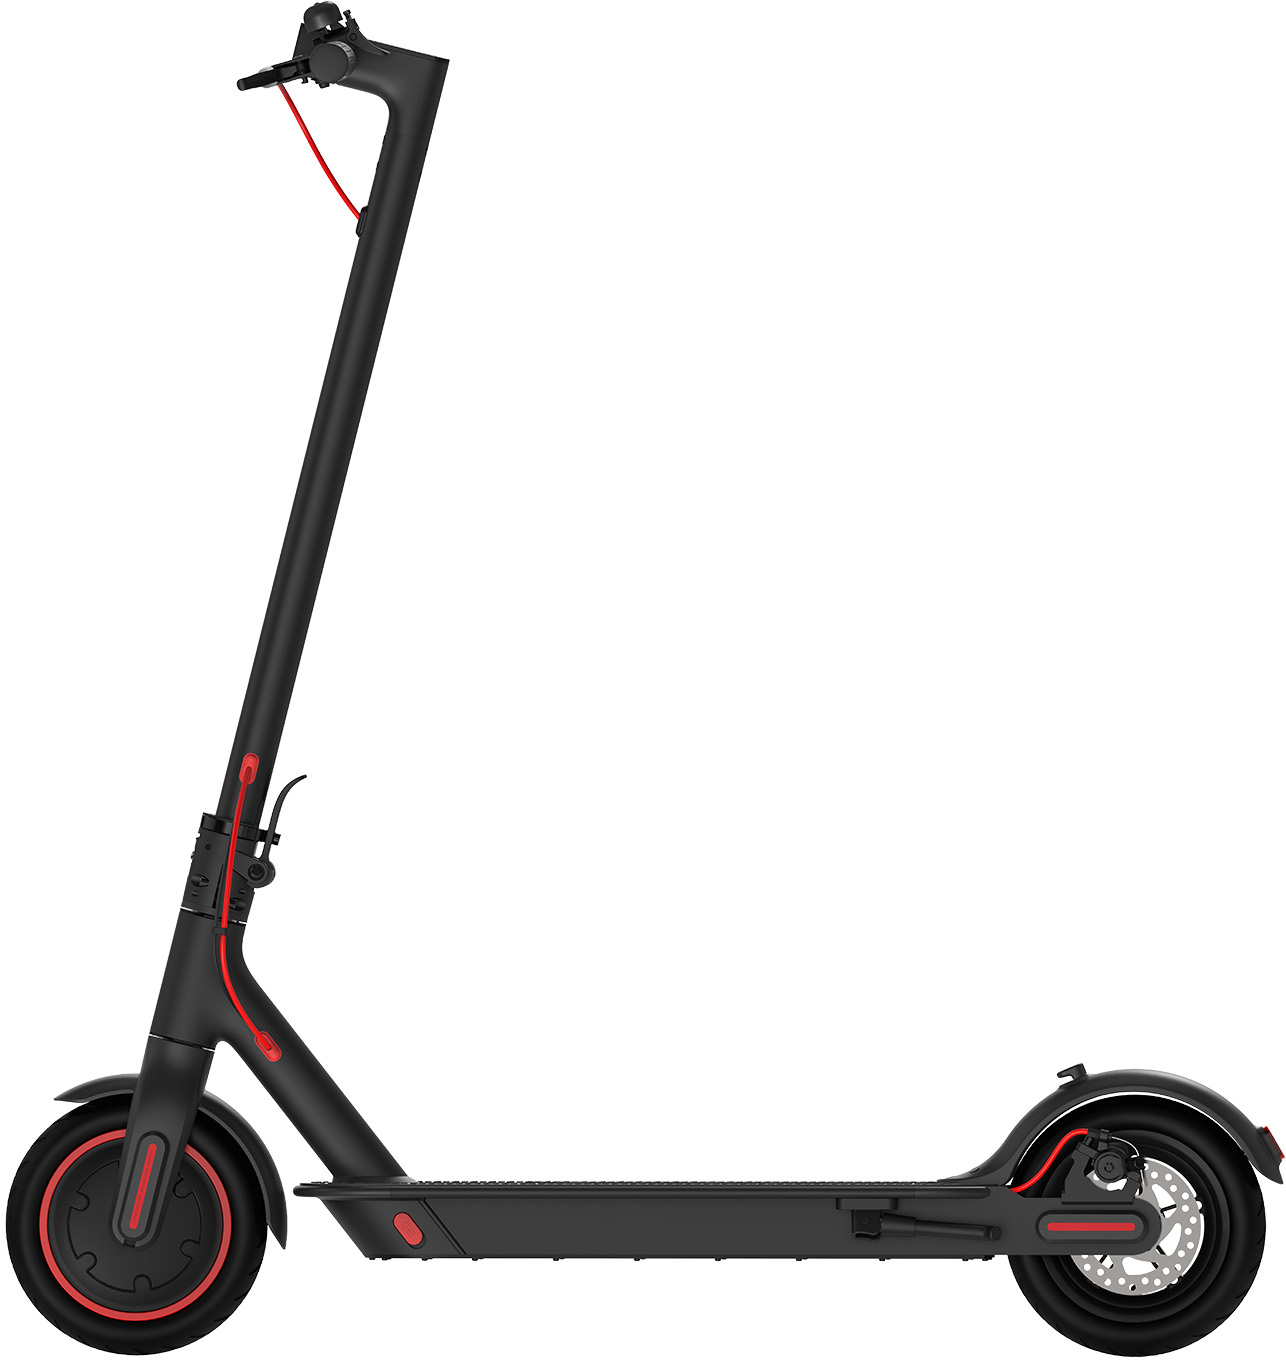 Xiaomi Mijia Electric Scooter (M365 Pro)